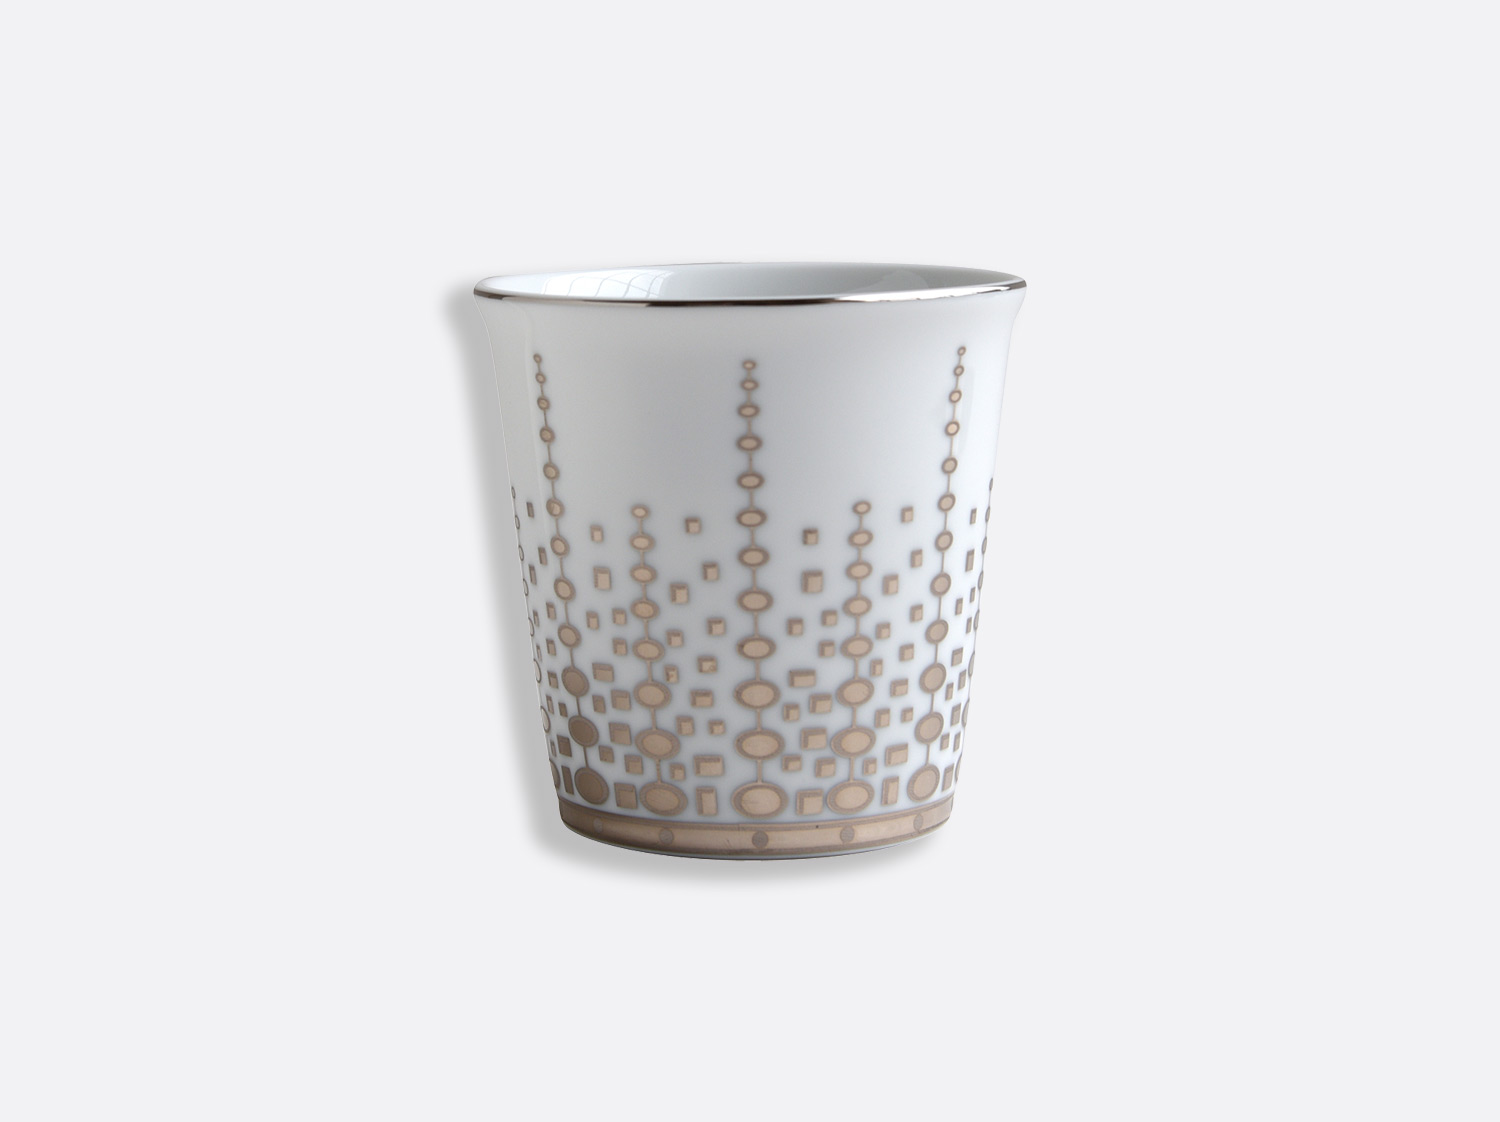 Pot 9 cm + bougie parfumée 200g en porcelaine de la collection Or Azur Bernardaud